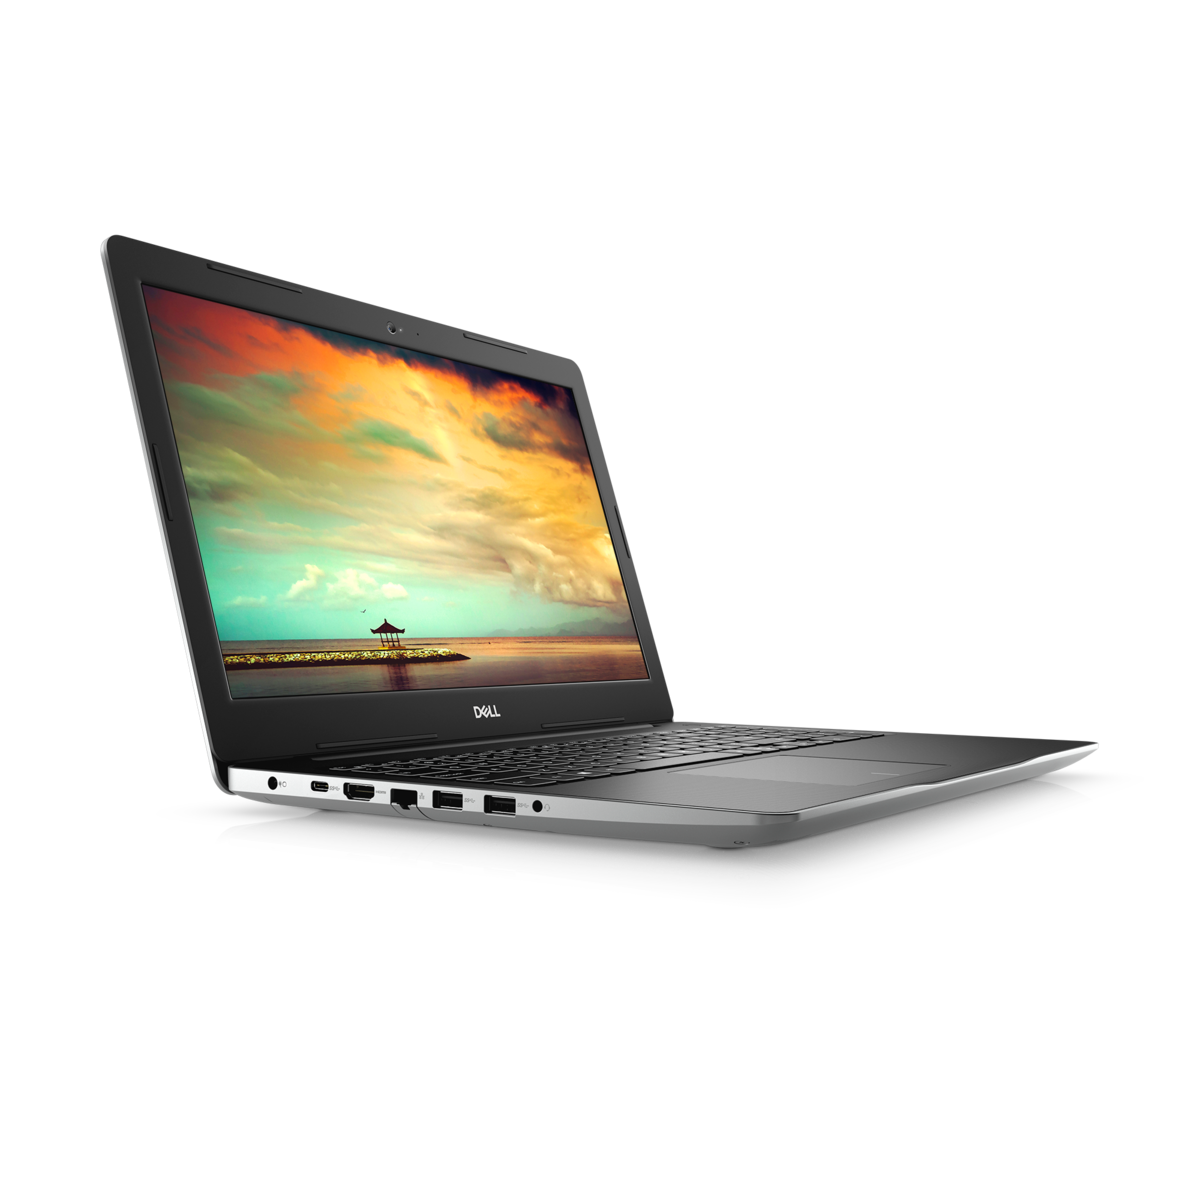 Dell Inspiron 14, 15, and 17 3000 series will get Comet Lake